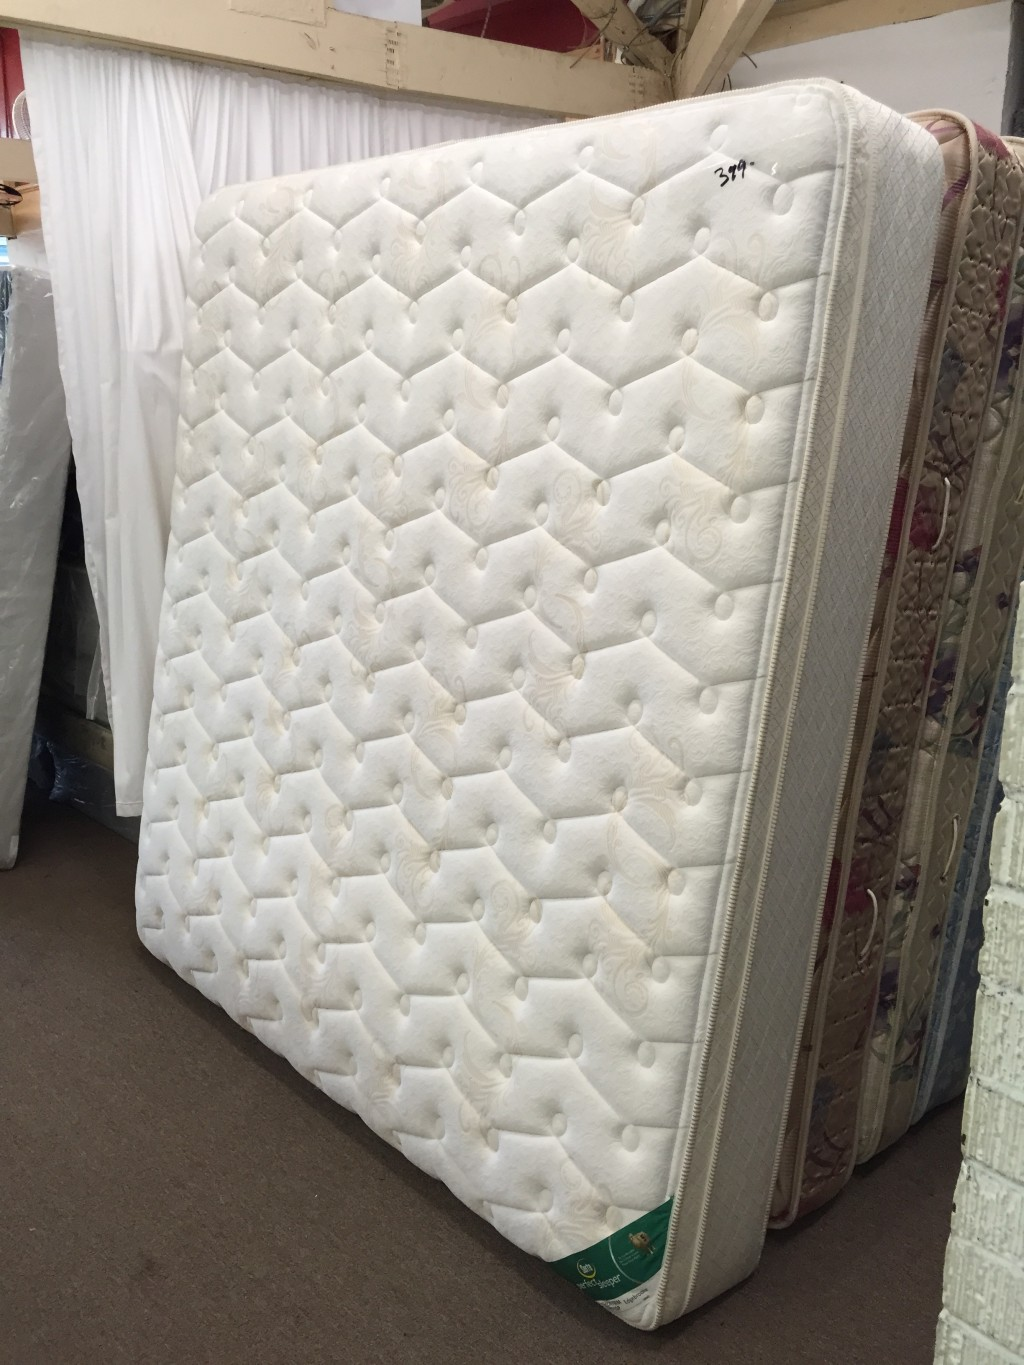 King Matress Cloud Supreme Breeze Queen Mattress And Foundation By Tempurpedic Sleep Master